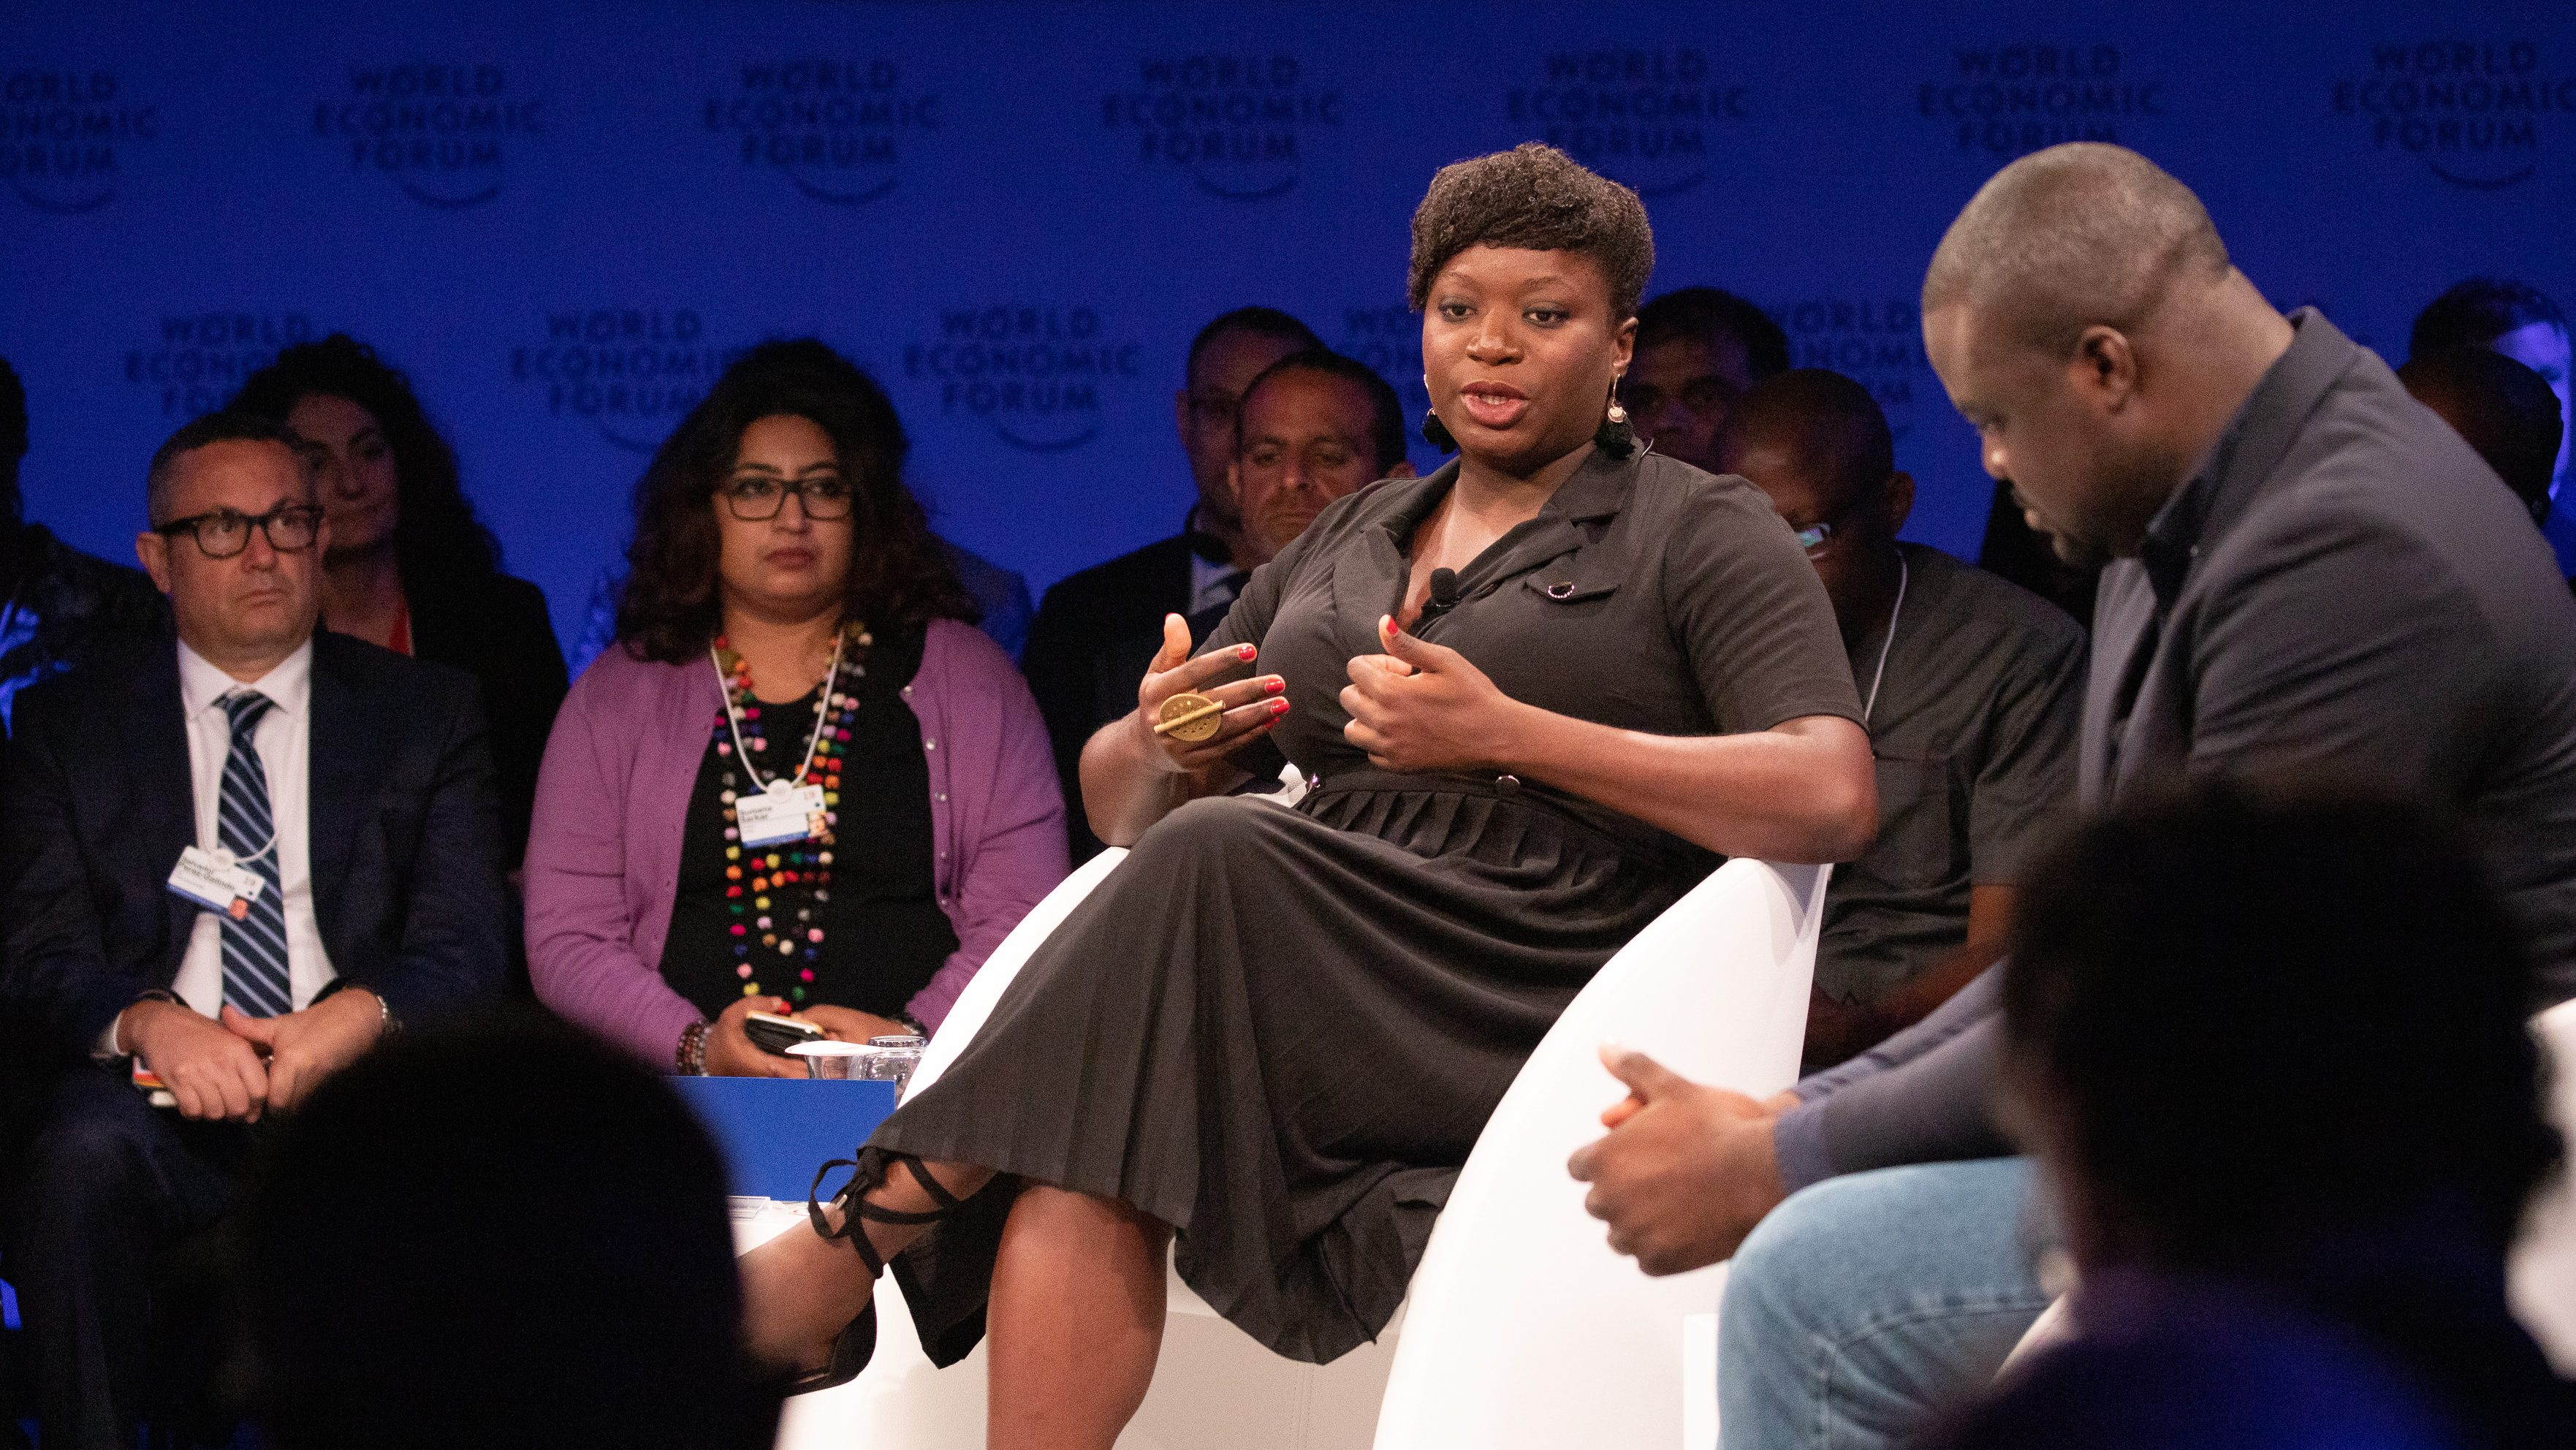 Fatoumata Ba, Founder and Chief Executive Officer, Janngo, France; Young Global Leader speaking during the session Africa's Innovators of the Year at the World Forum World Economic Forum on Africa 2019.